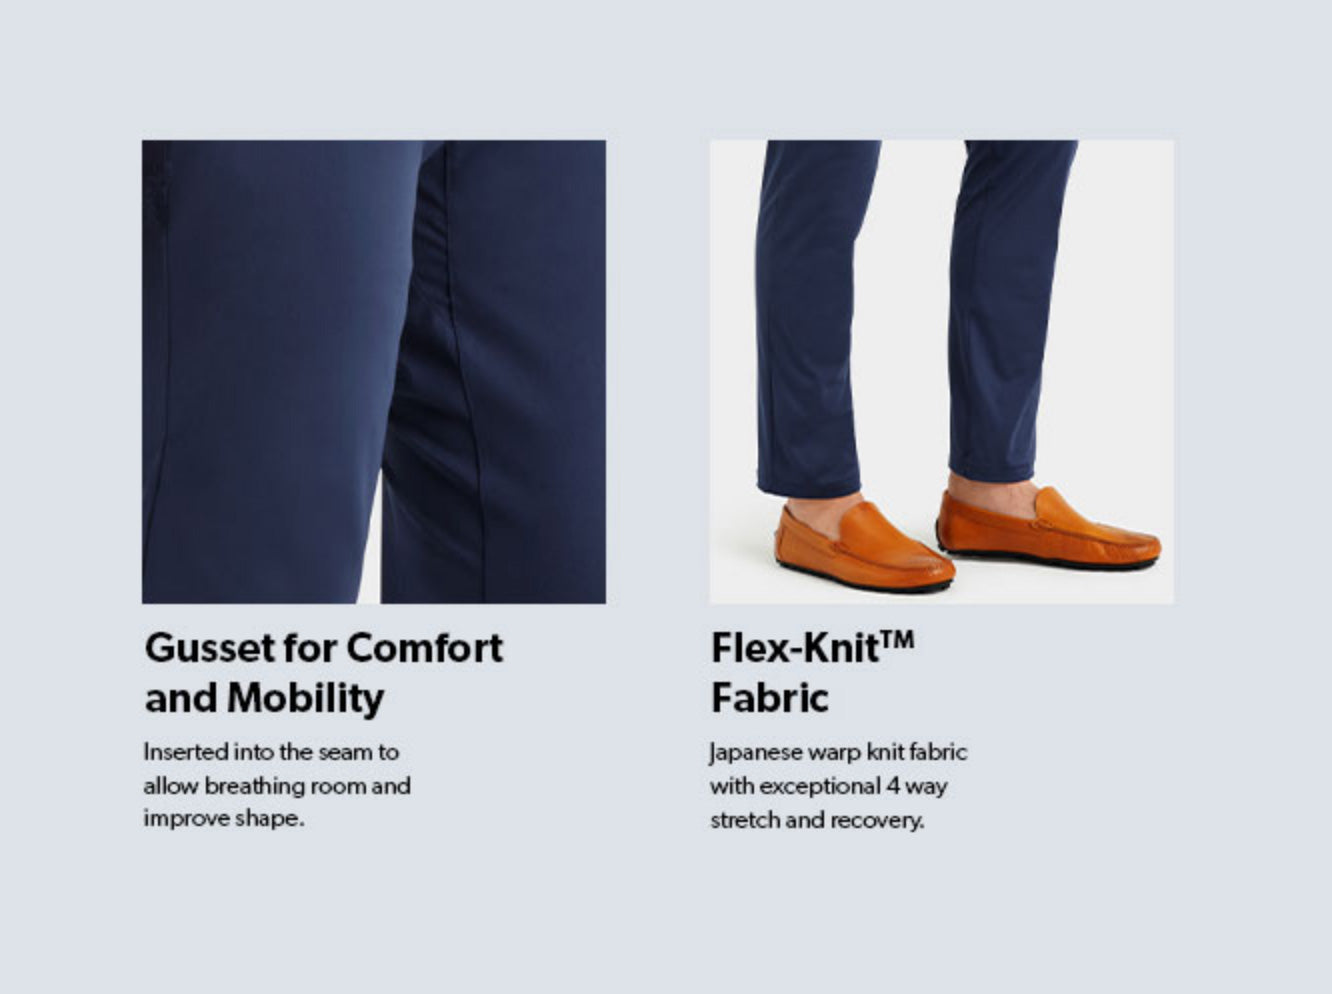 Commuter fabric section, comfort and mobility and flex knit fabric